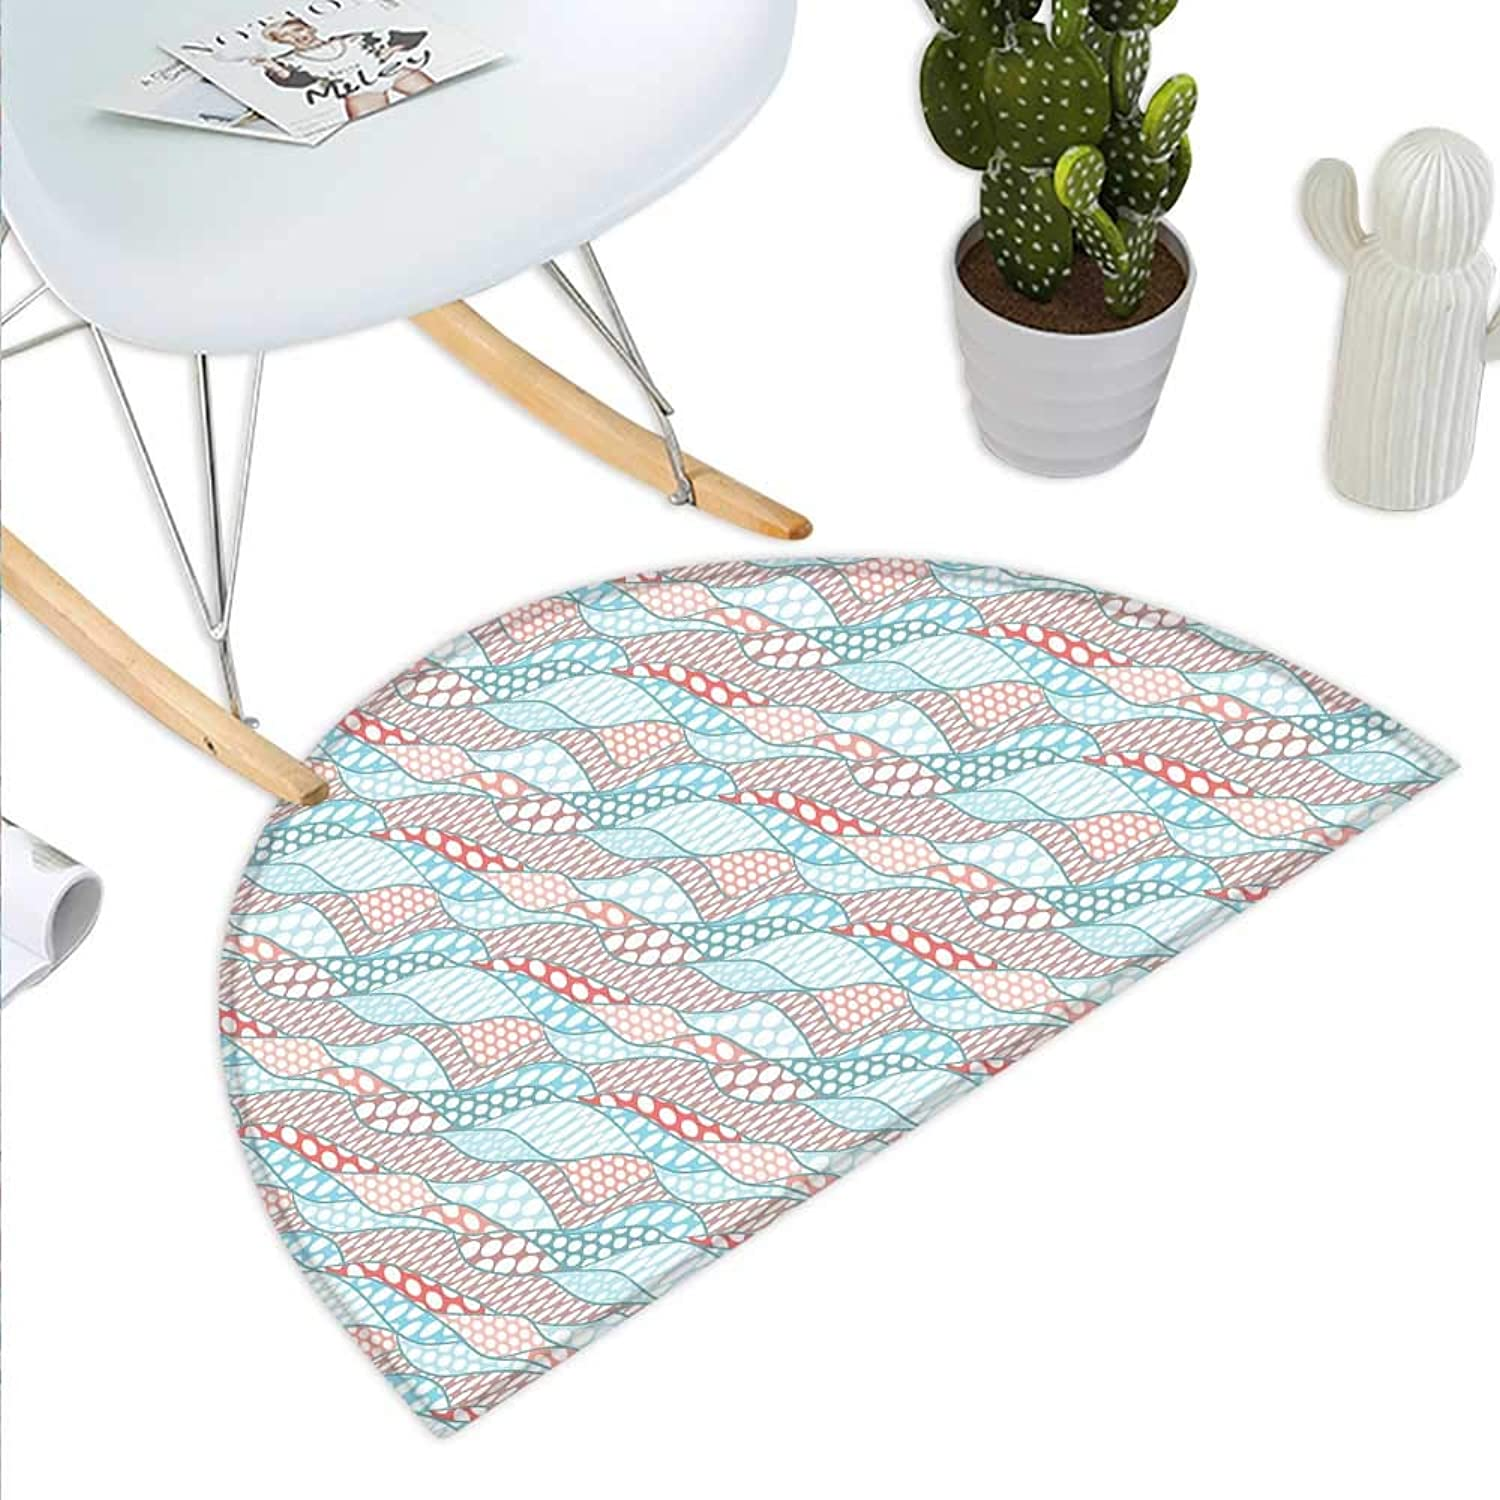 Geometric Semicircle Doormat Wavy Stripes with Large Spots Ovals Leaf Stylish Soft Artwork Halfmoon doormats H 39.3  xD 59  Pale bluee Dried pink Peach